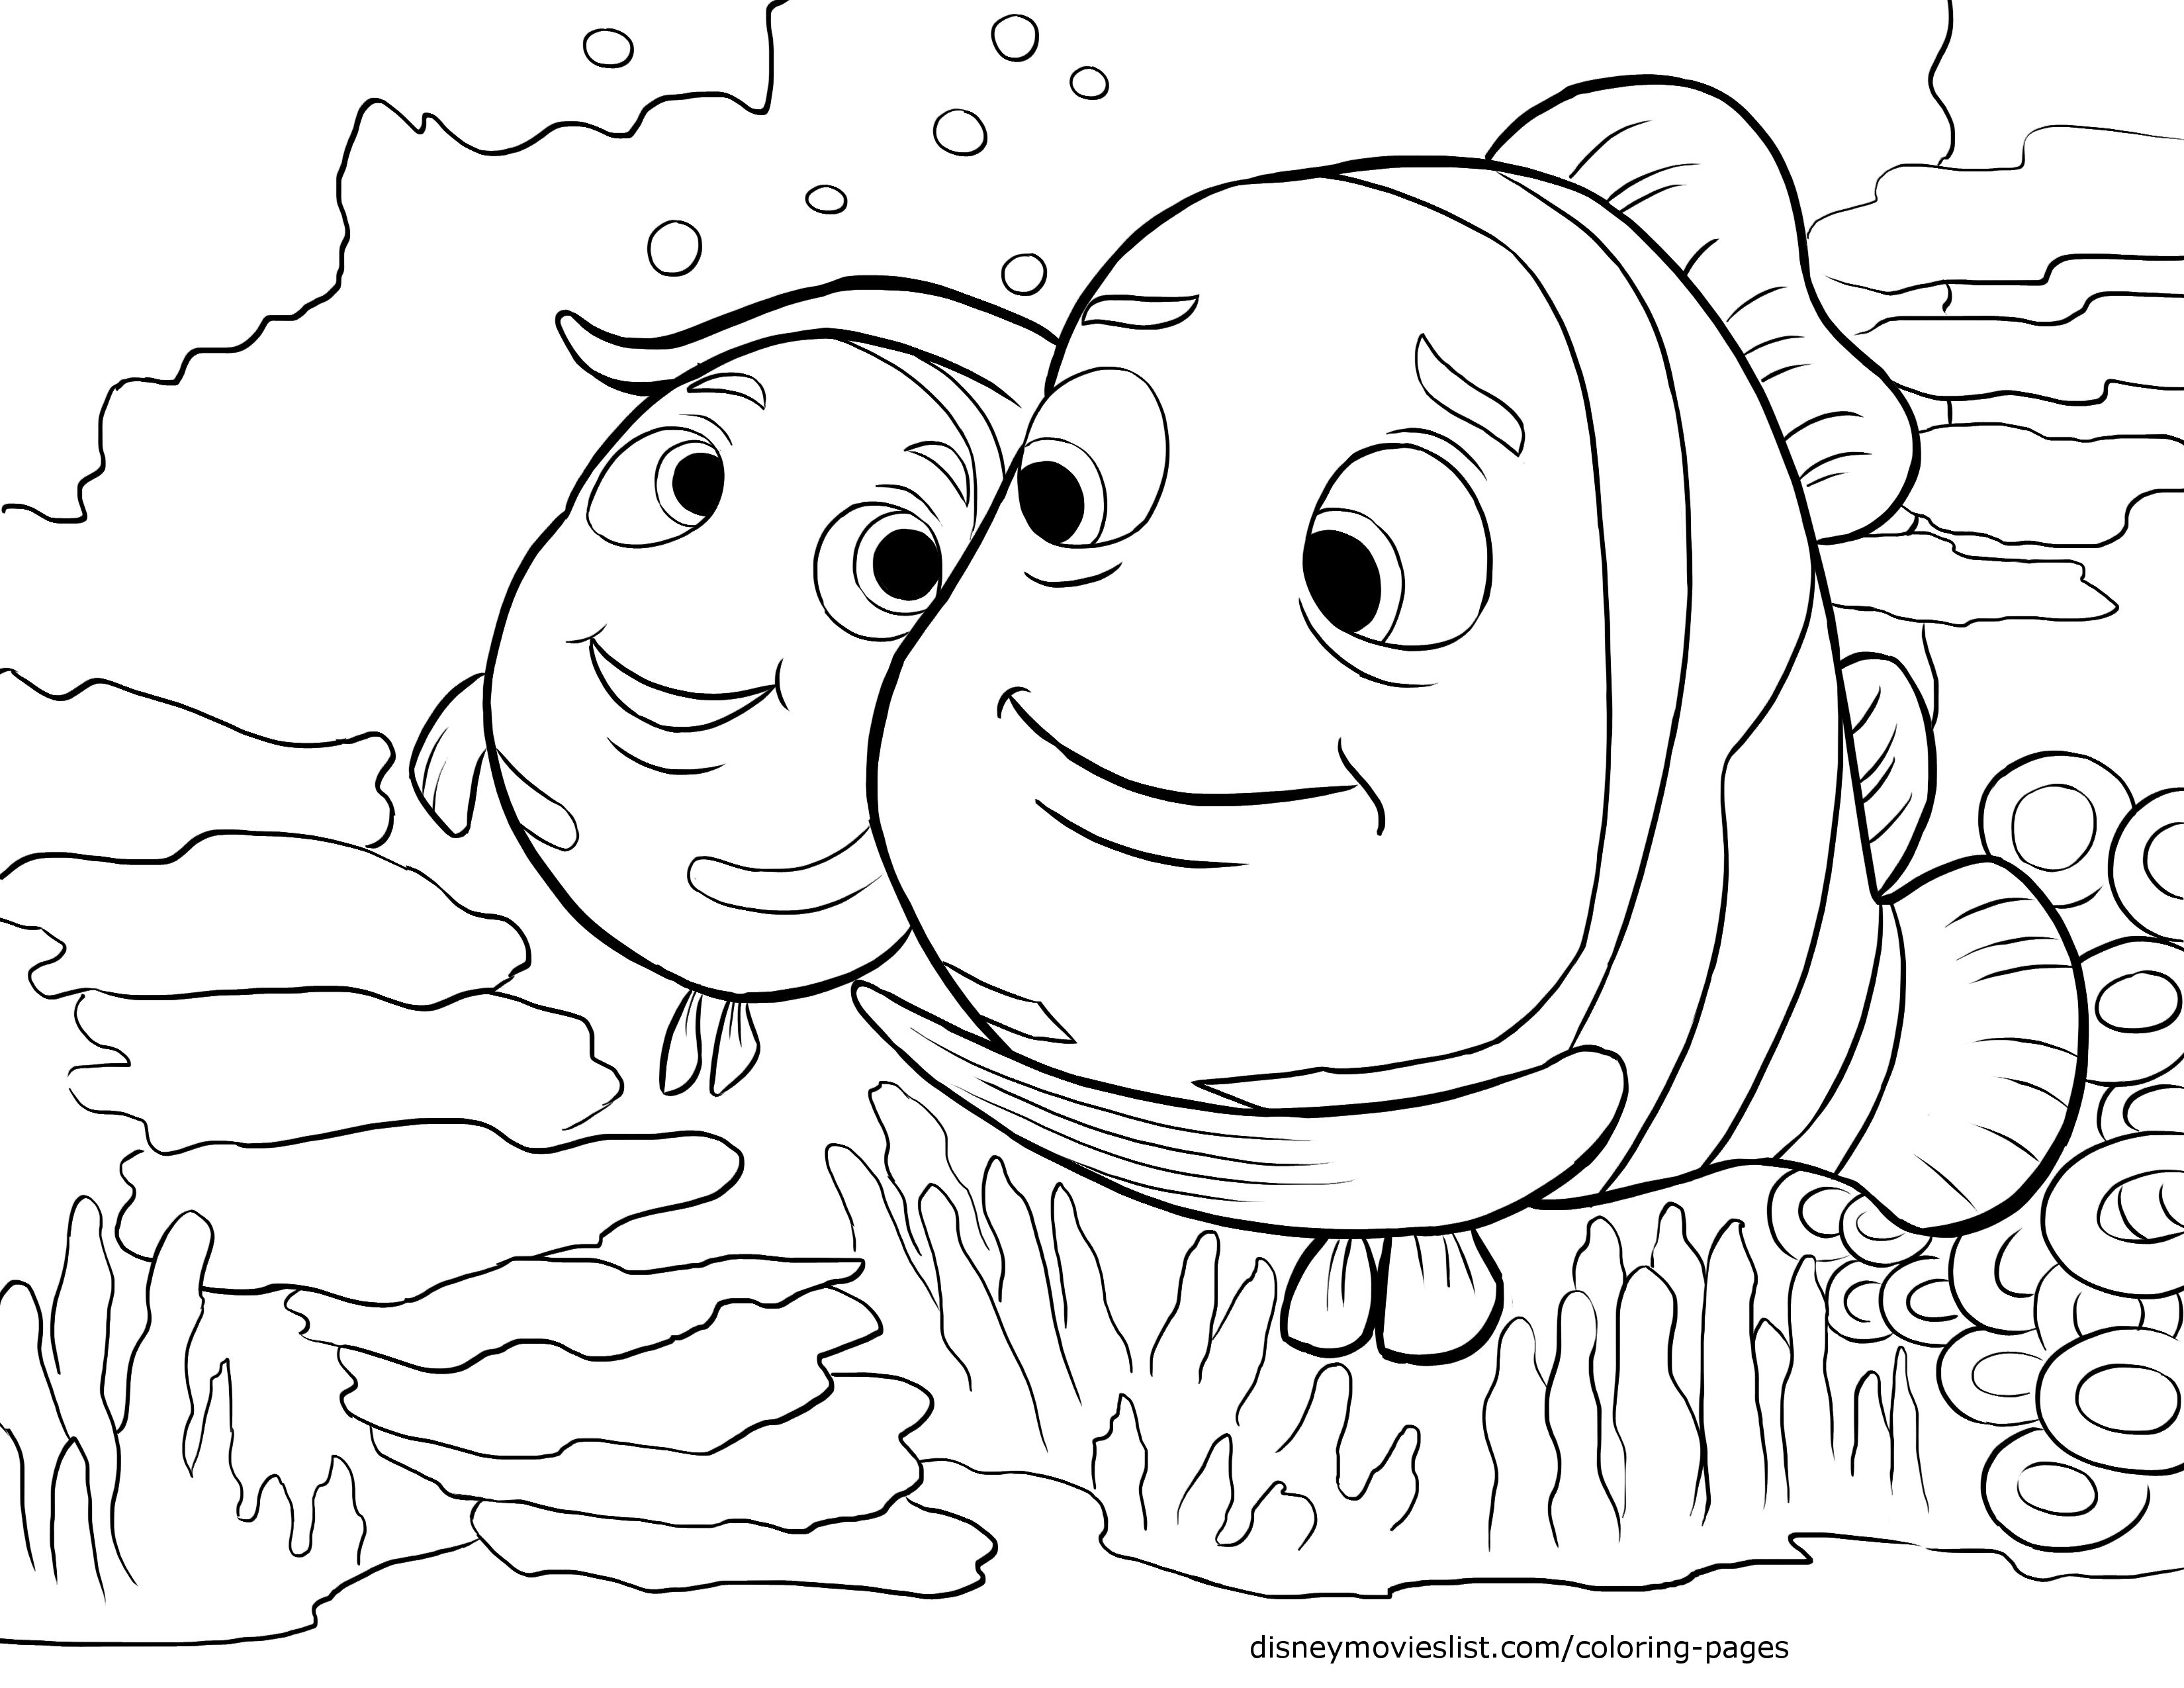 finding nemo coloring pages to download and print for free